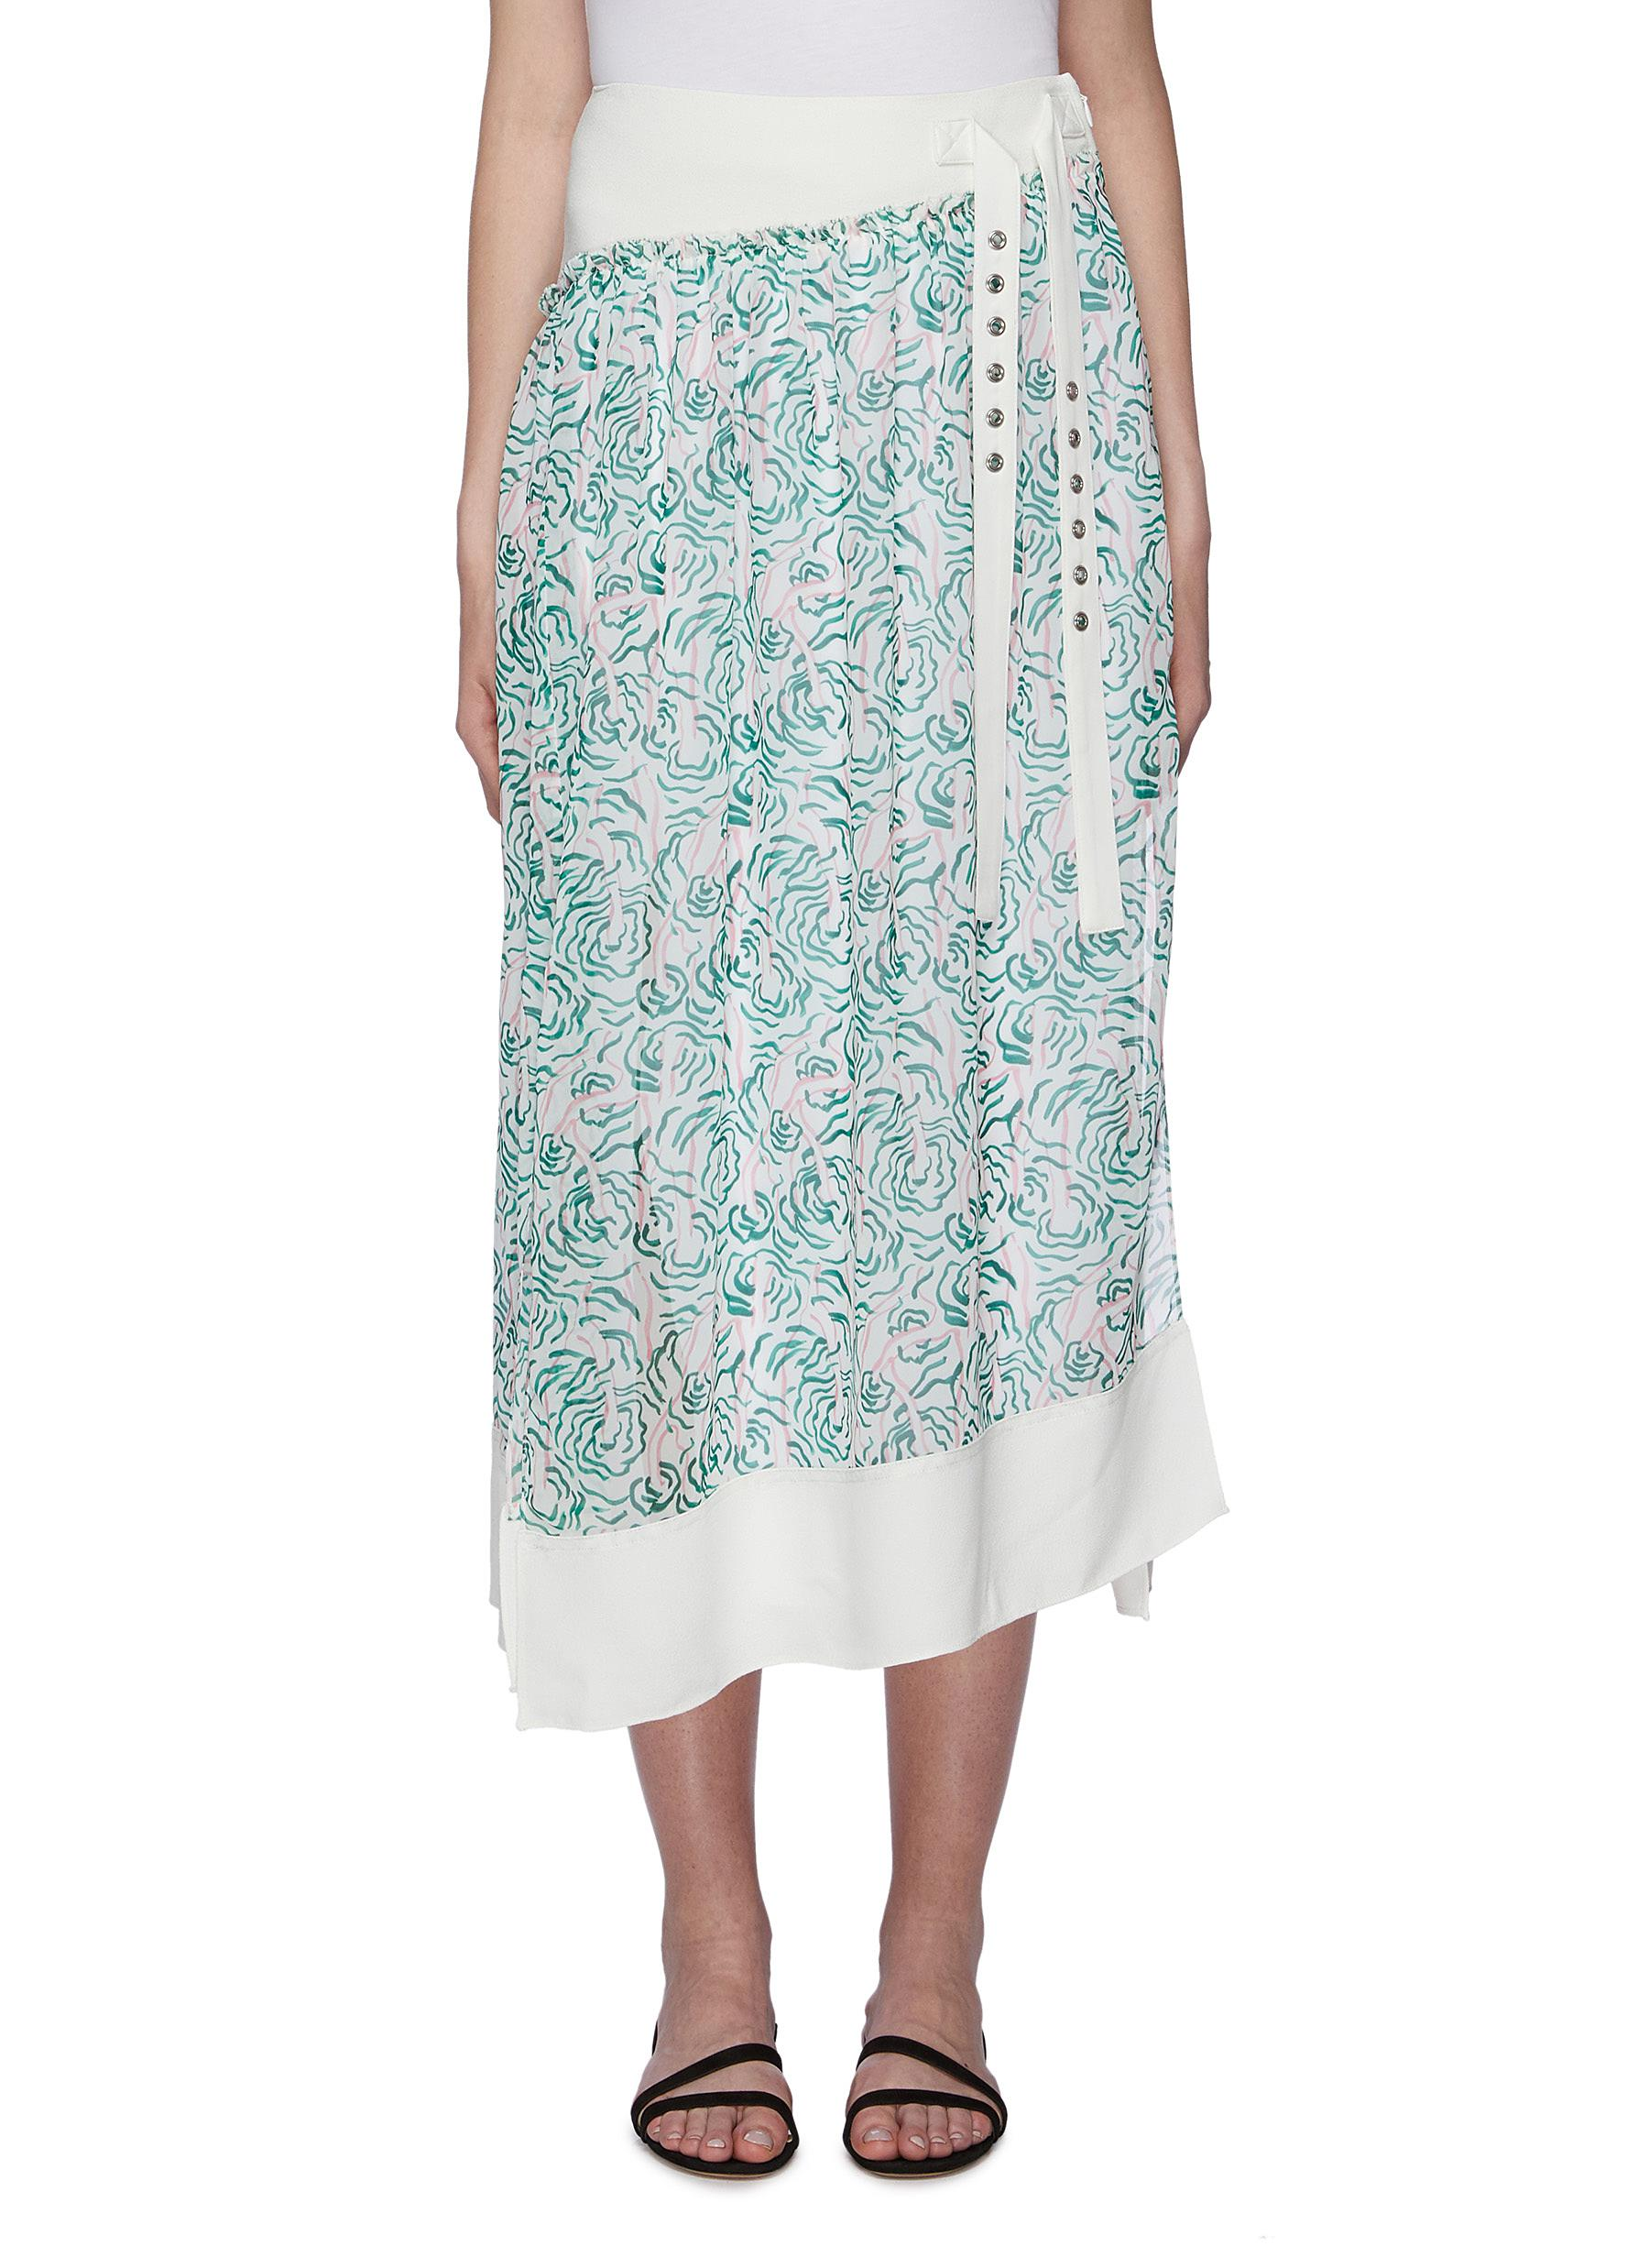 Sash tie floral print asymmetric pleated midi skirt by 3.1 Phillip Lim